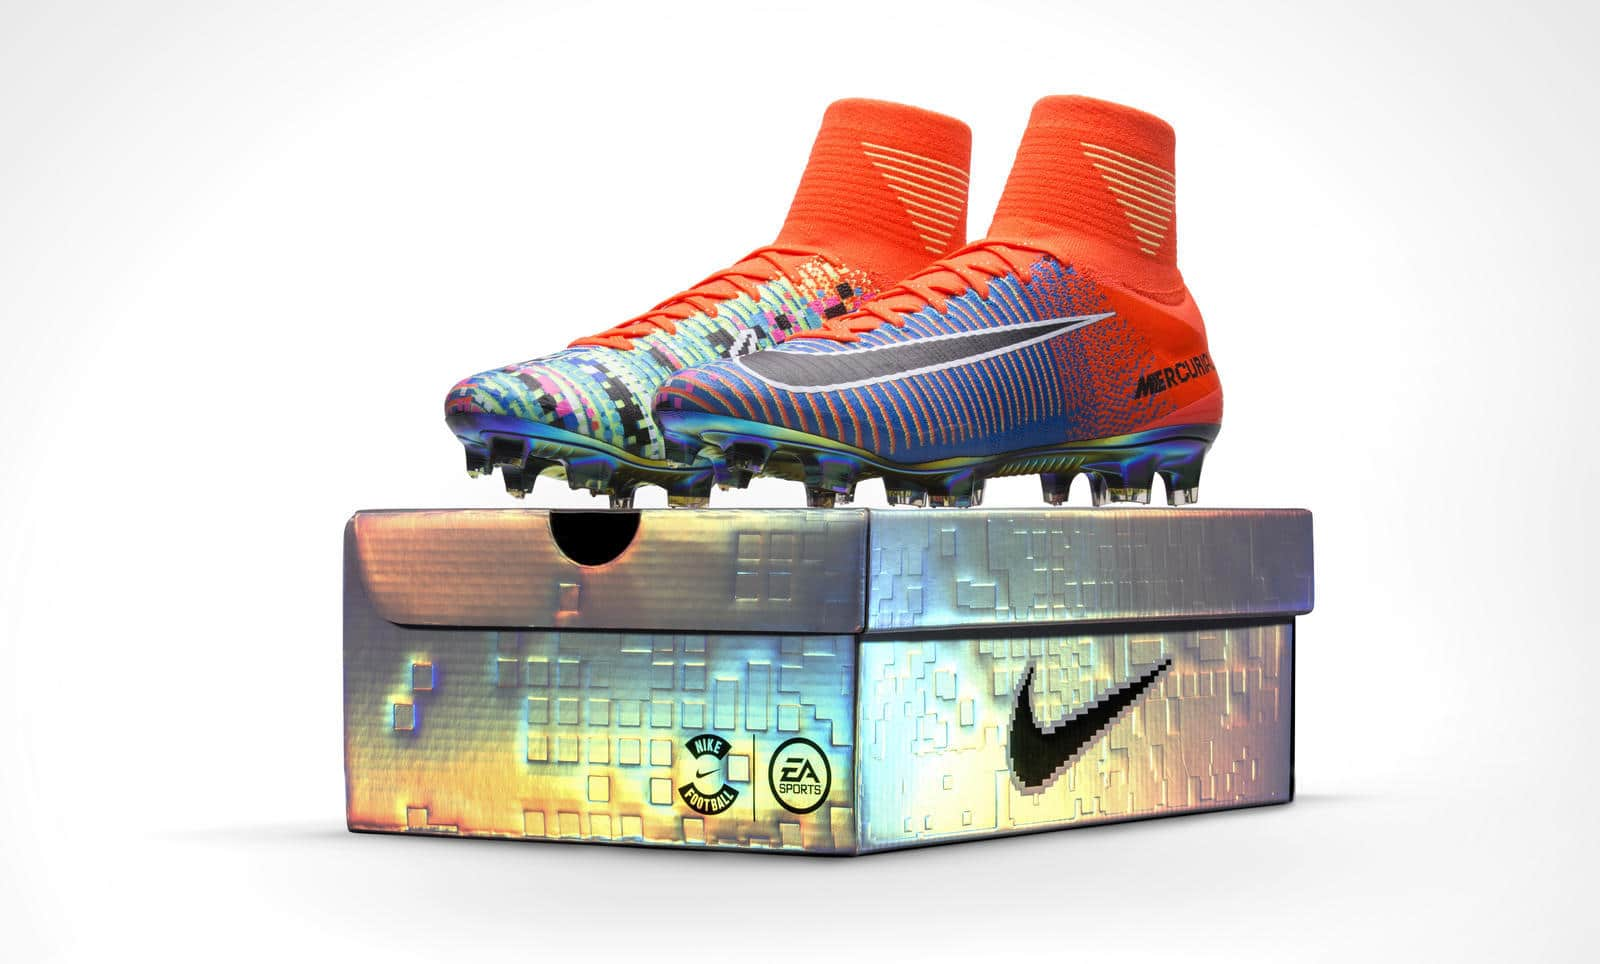 7090bd2b4 Nike and EA Mercurial Soccer Shoes Comes With A 16-Bit Design